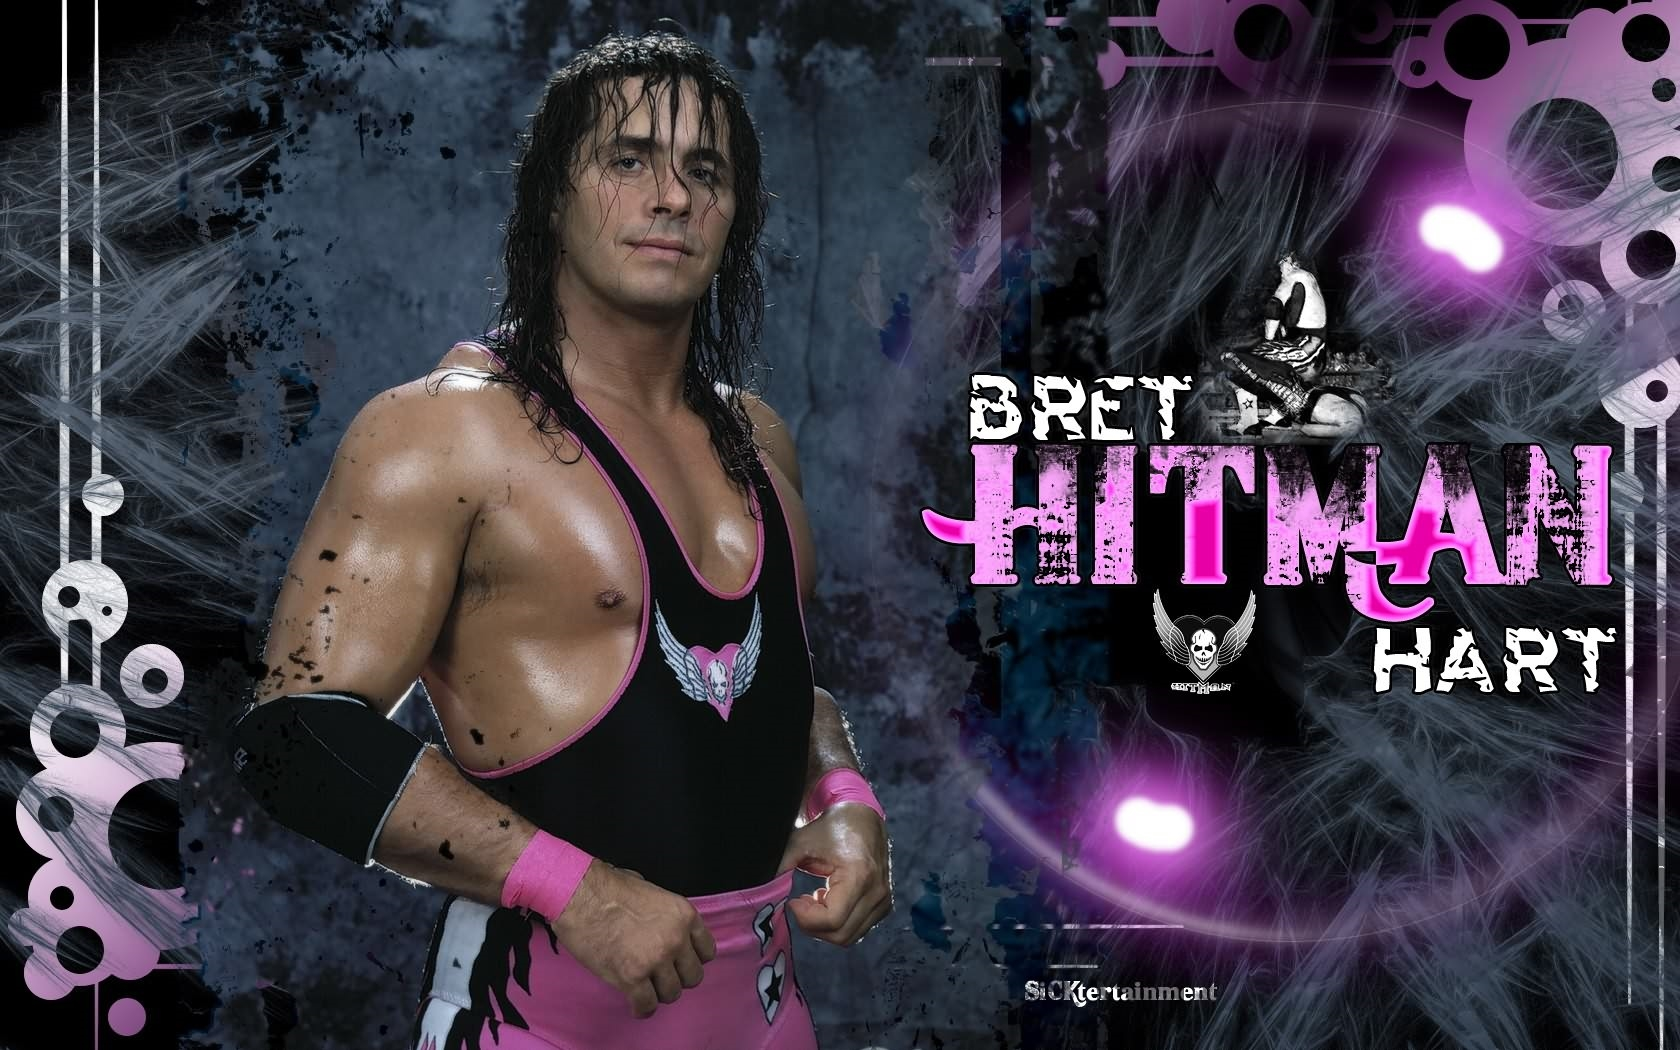 bret the hitman hart wallpaper hd free download